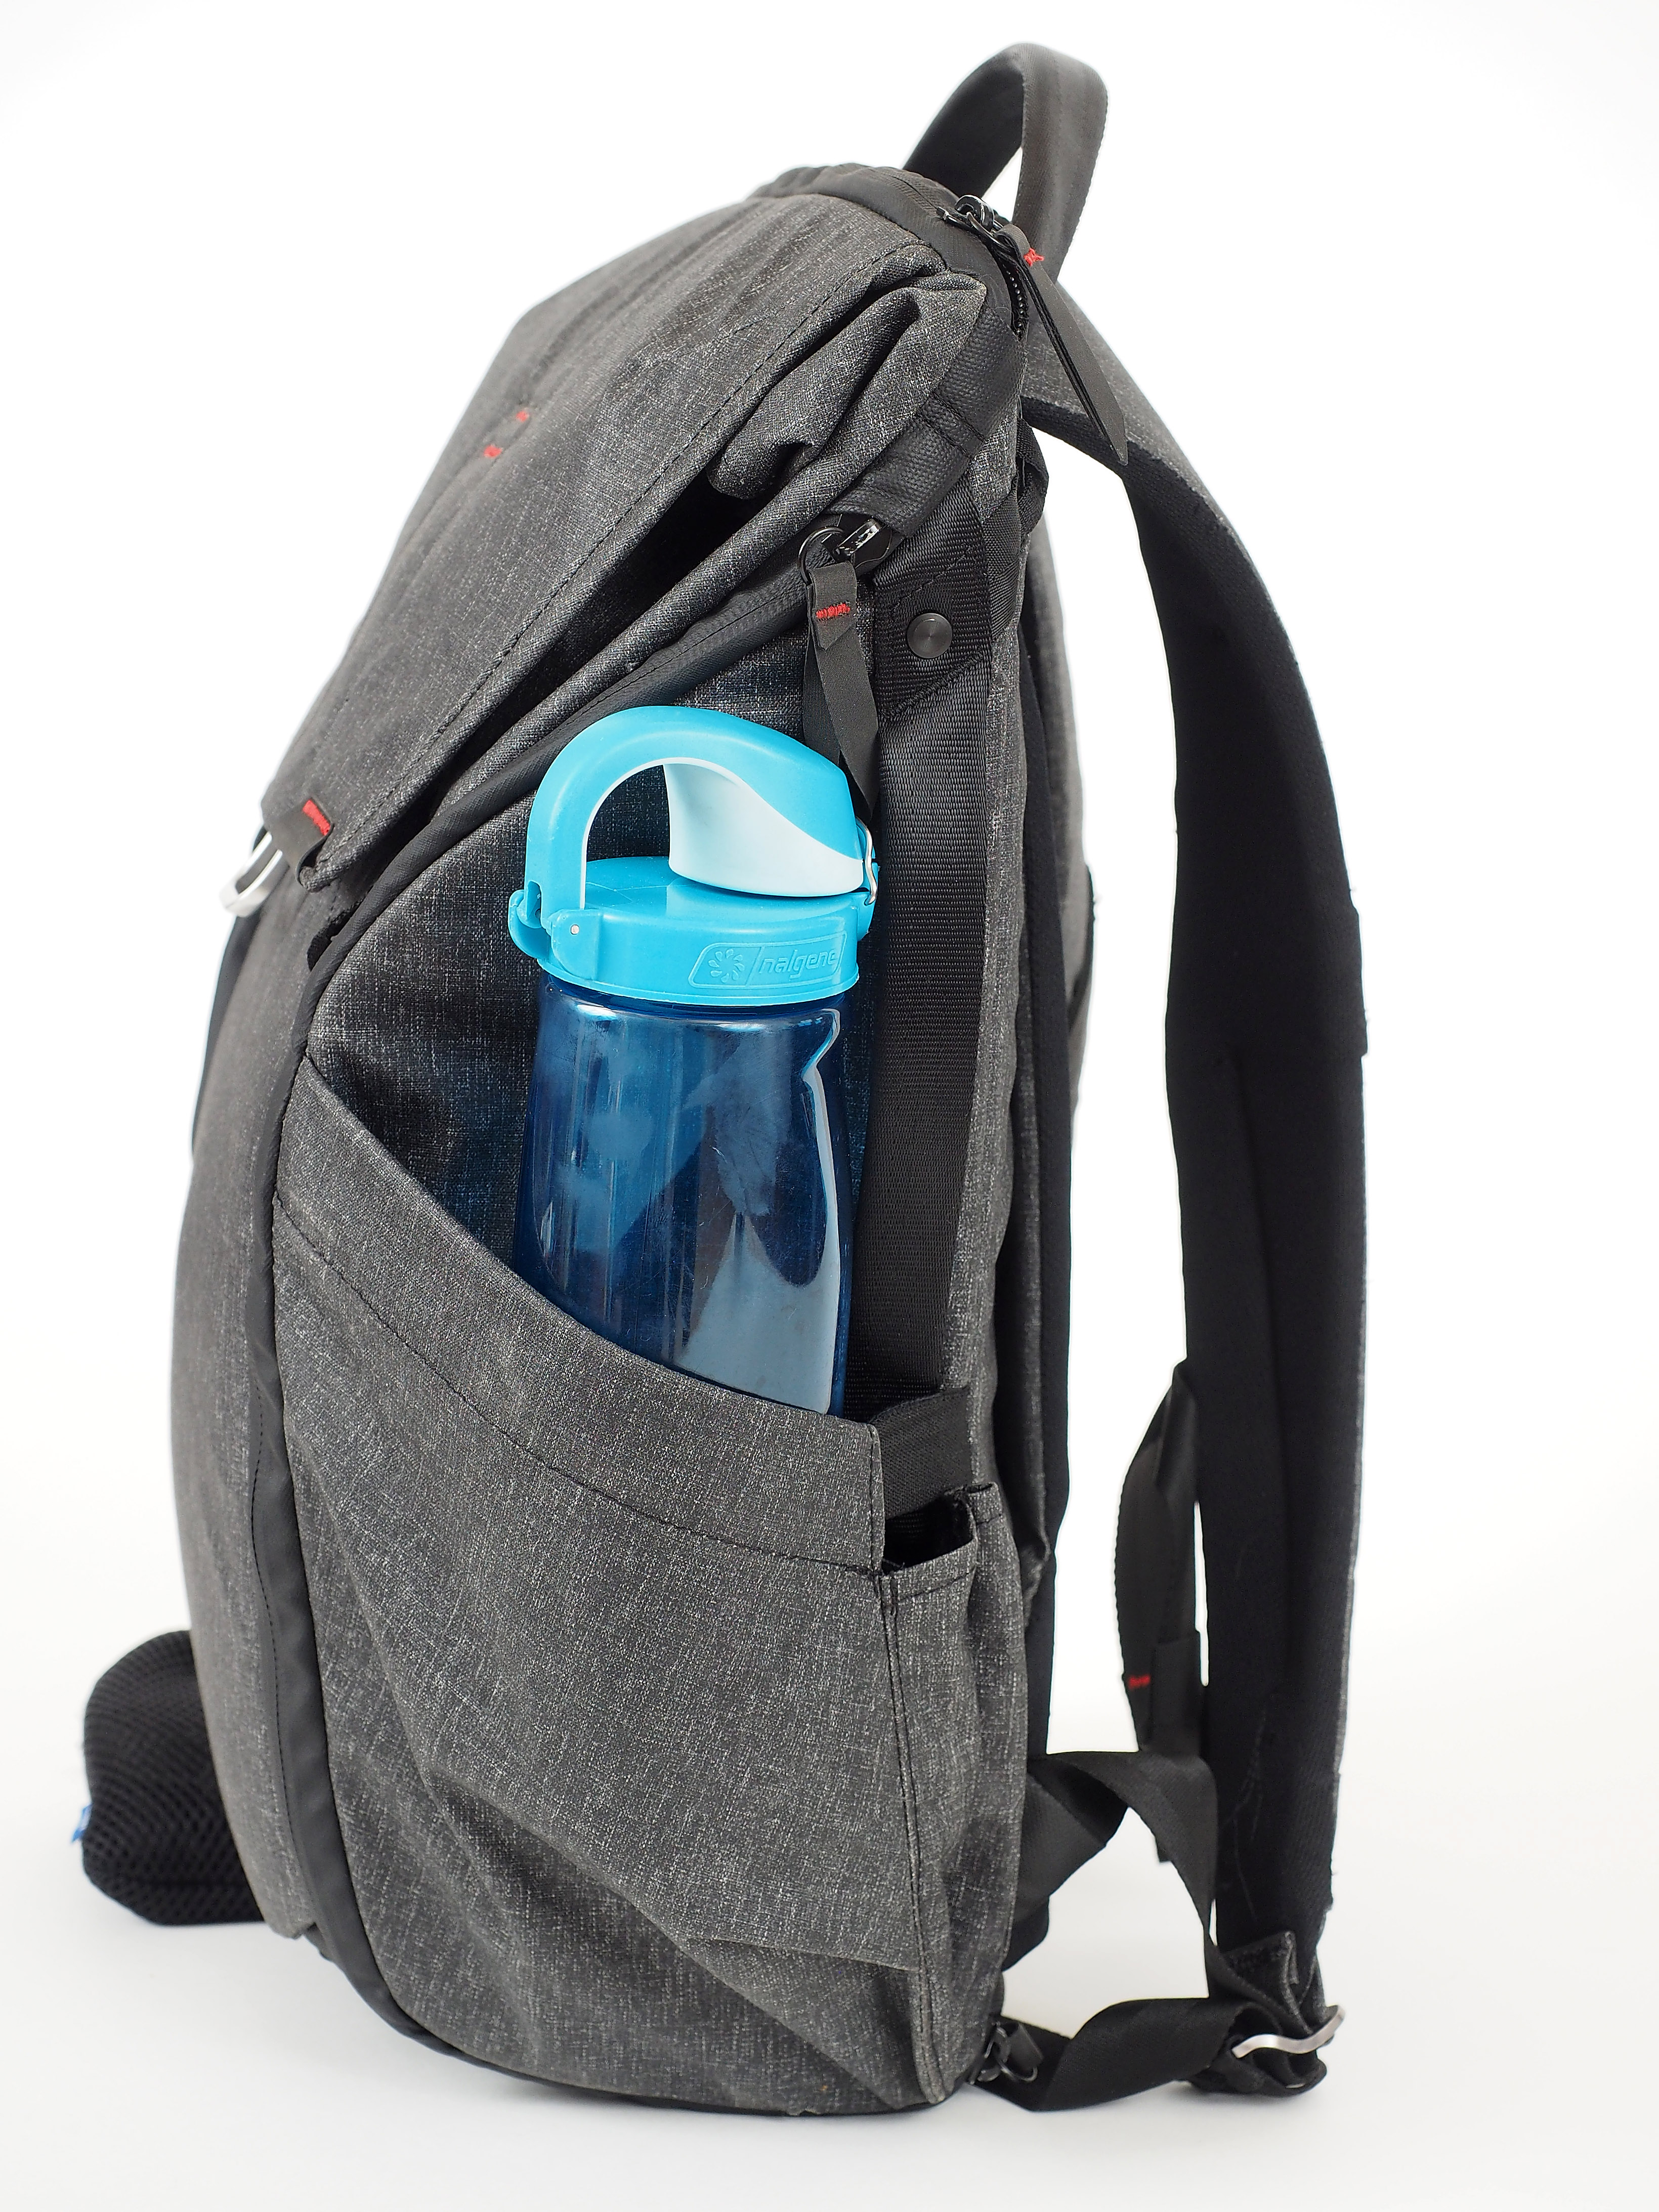 The external side pockets are really useful for both water bottles and  things like tripods. However baeba66166e5f